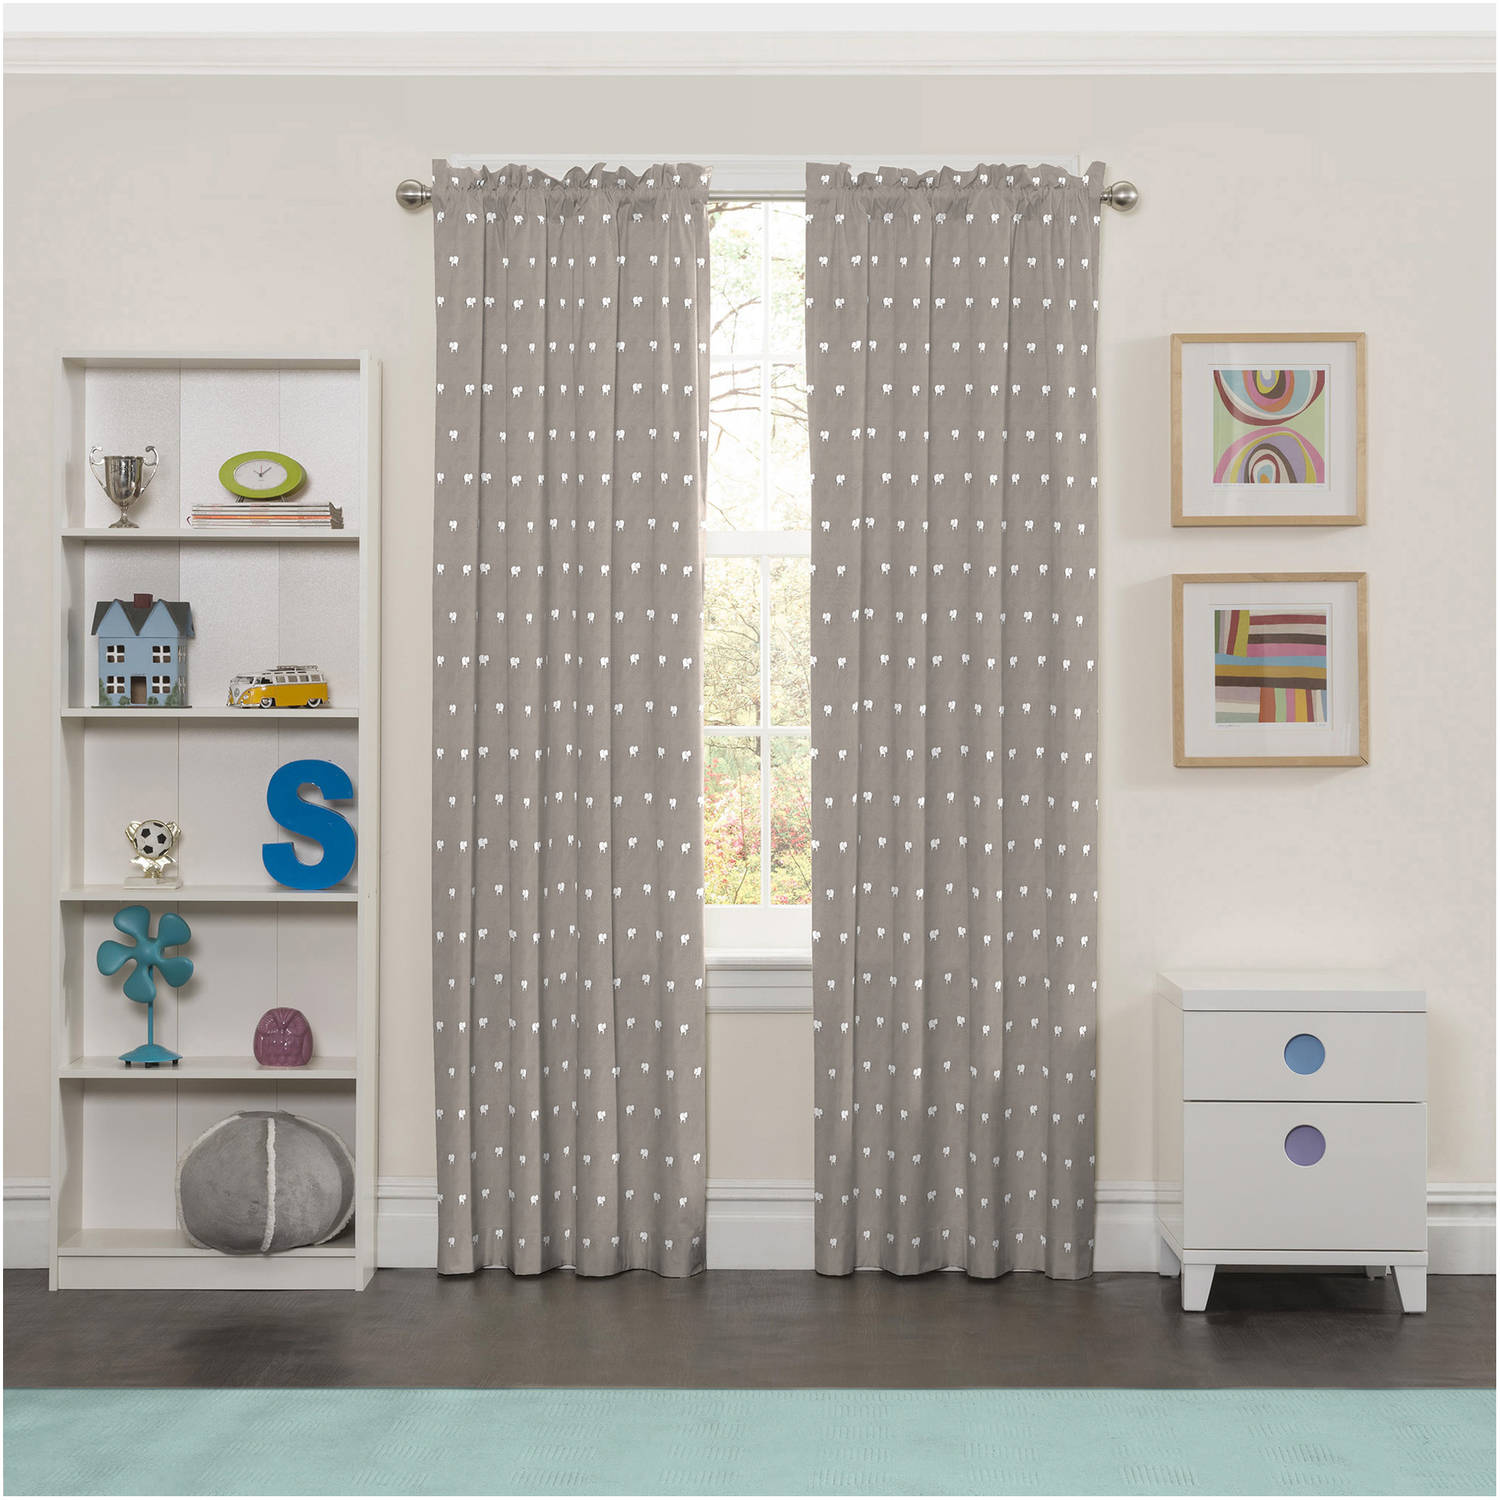 Eclipse elephant print kids bedroom blackout curtain panel - Childrens bedroom blackout curtains ...